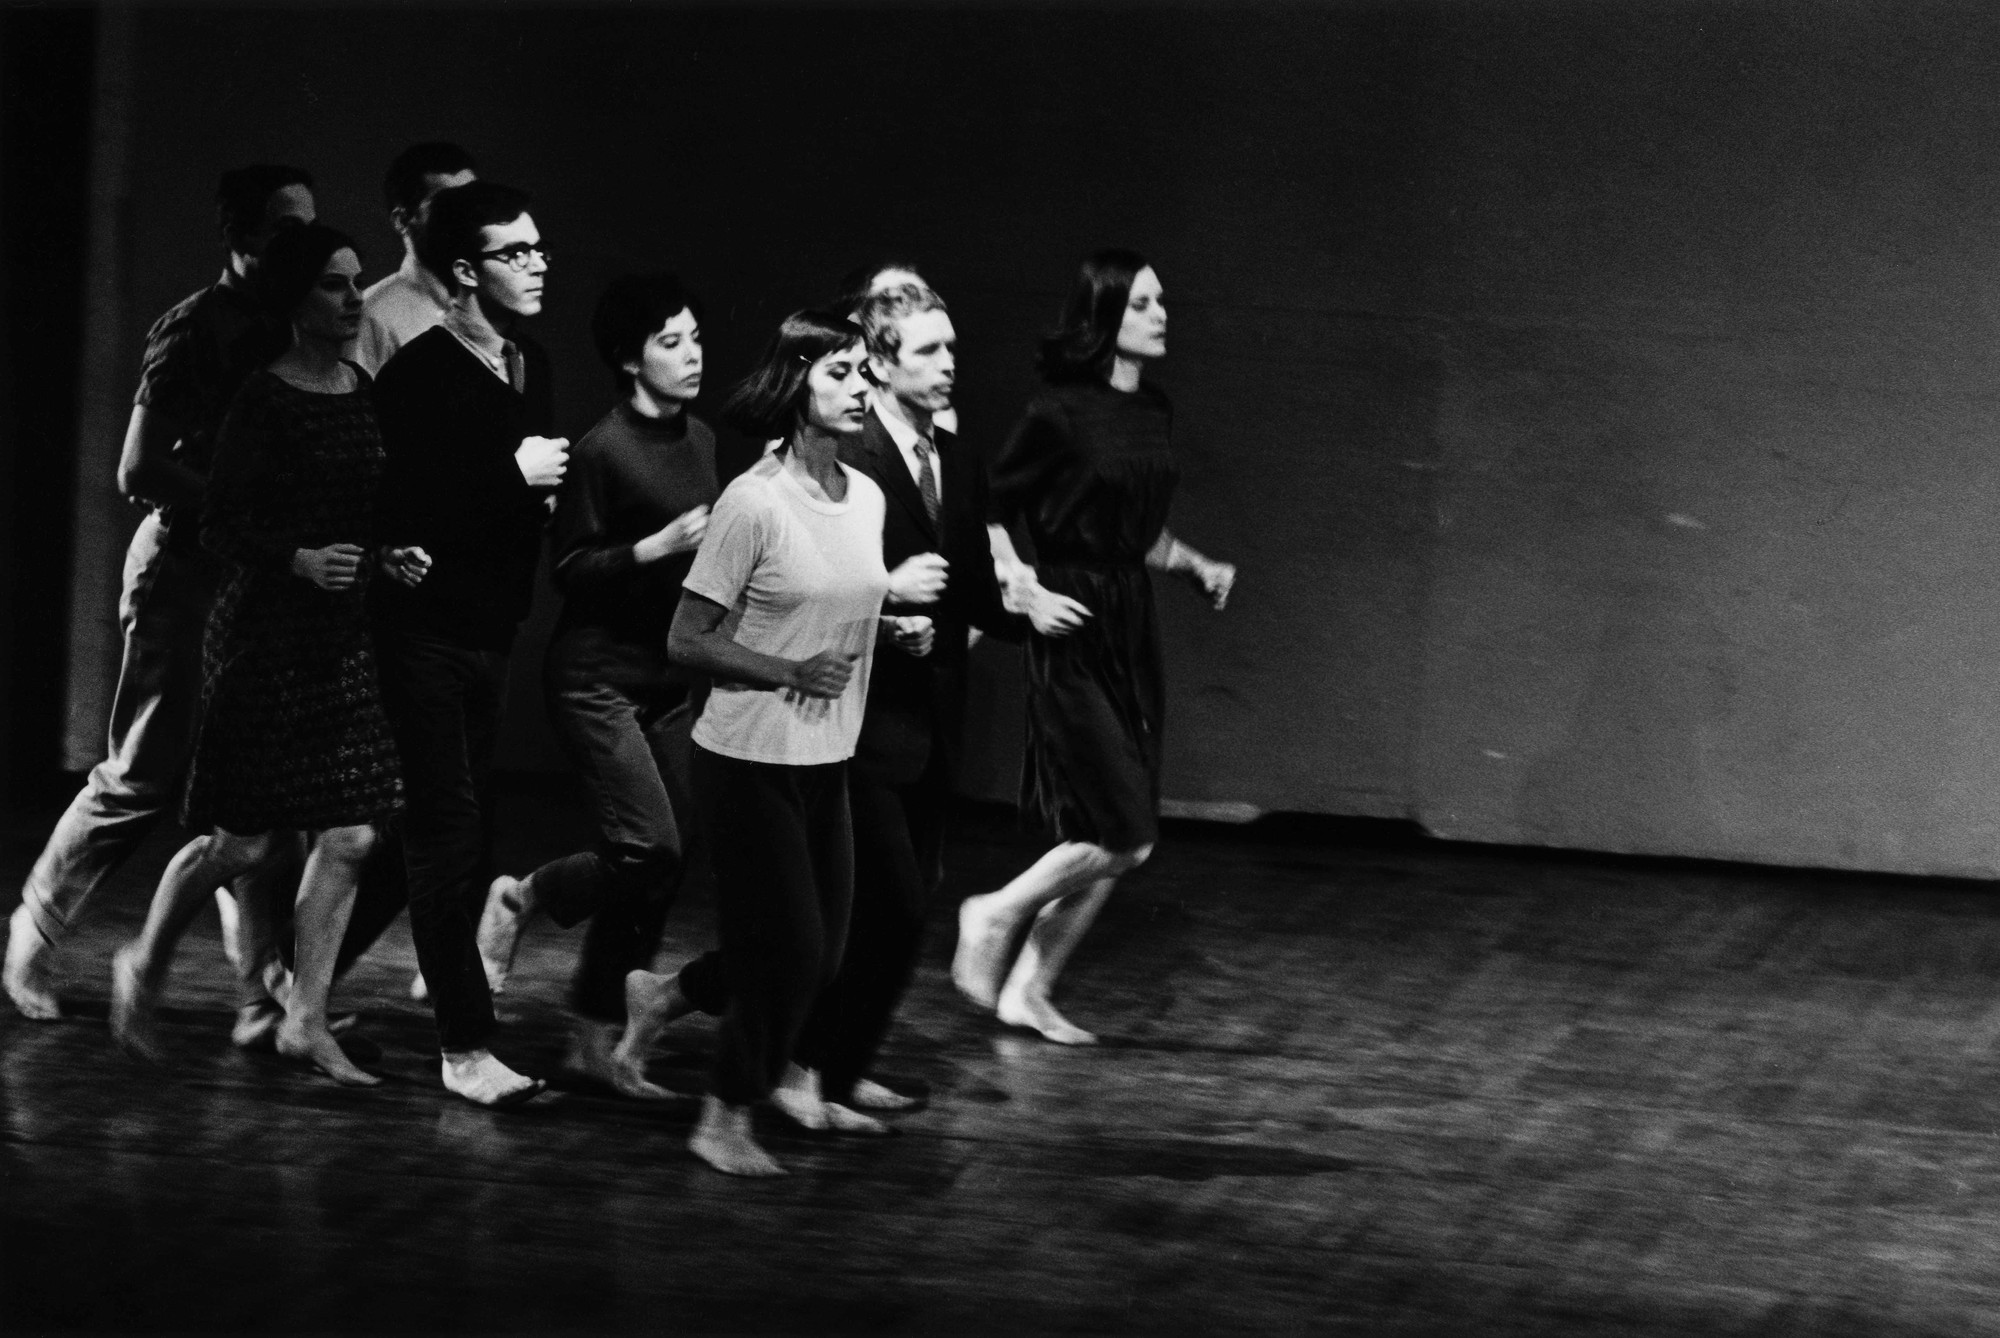 Peter Moore's photograph of Robert Rauschenberg, Joseph Schlichter (back), Sally Gross, Tony Holder, Deborah Hay, and Robert Morris (middle), Yvonne Rainer, Alex Hay, and Lucinda Childs (front) in We Shall Run, 1963. Performed in Two Evenings of Dances by Yvonne Rainer, Wadsworth Atheneum, Hartford, Connecticut, March 7, 1965. © Barbara Moore/Licensed by VAGA at ARS, NY. Courtesy Paula Cooper Gallery, New York